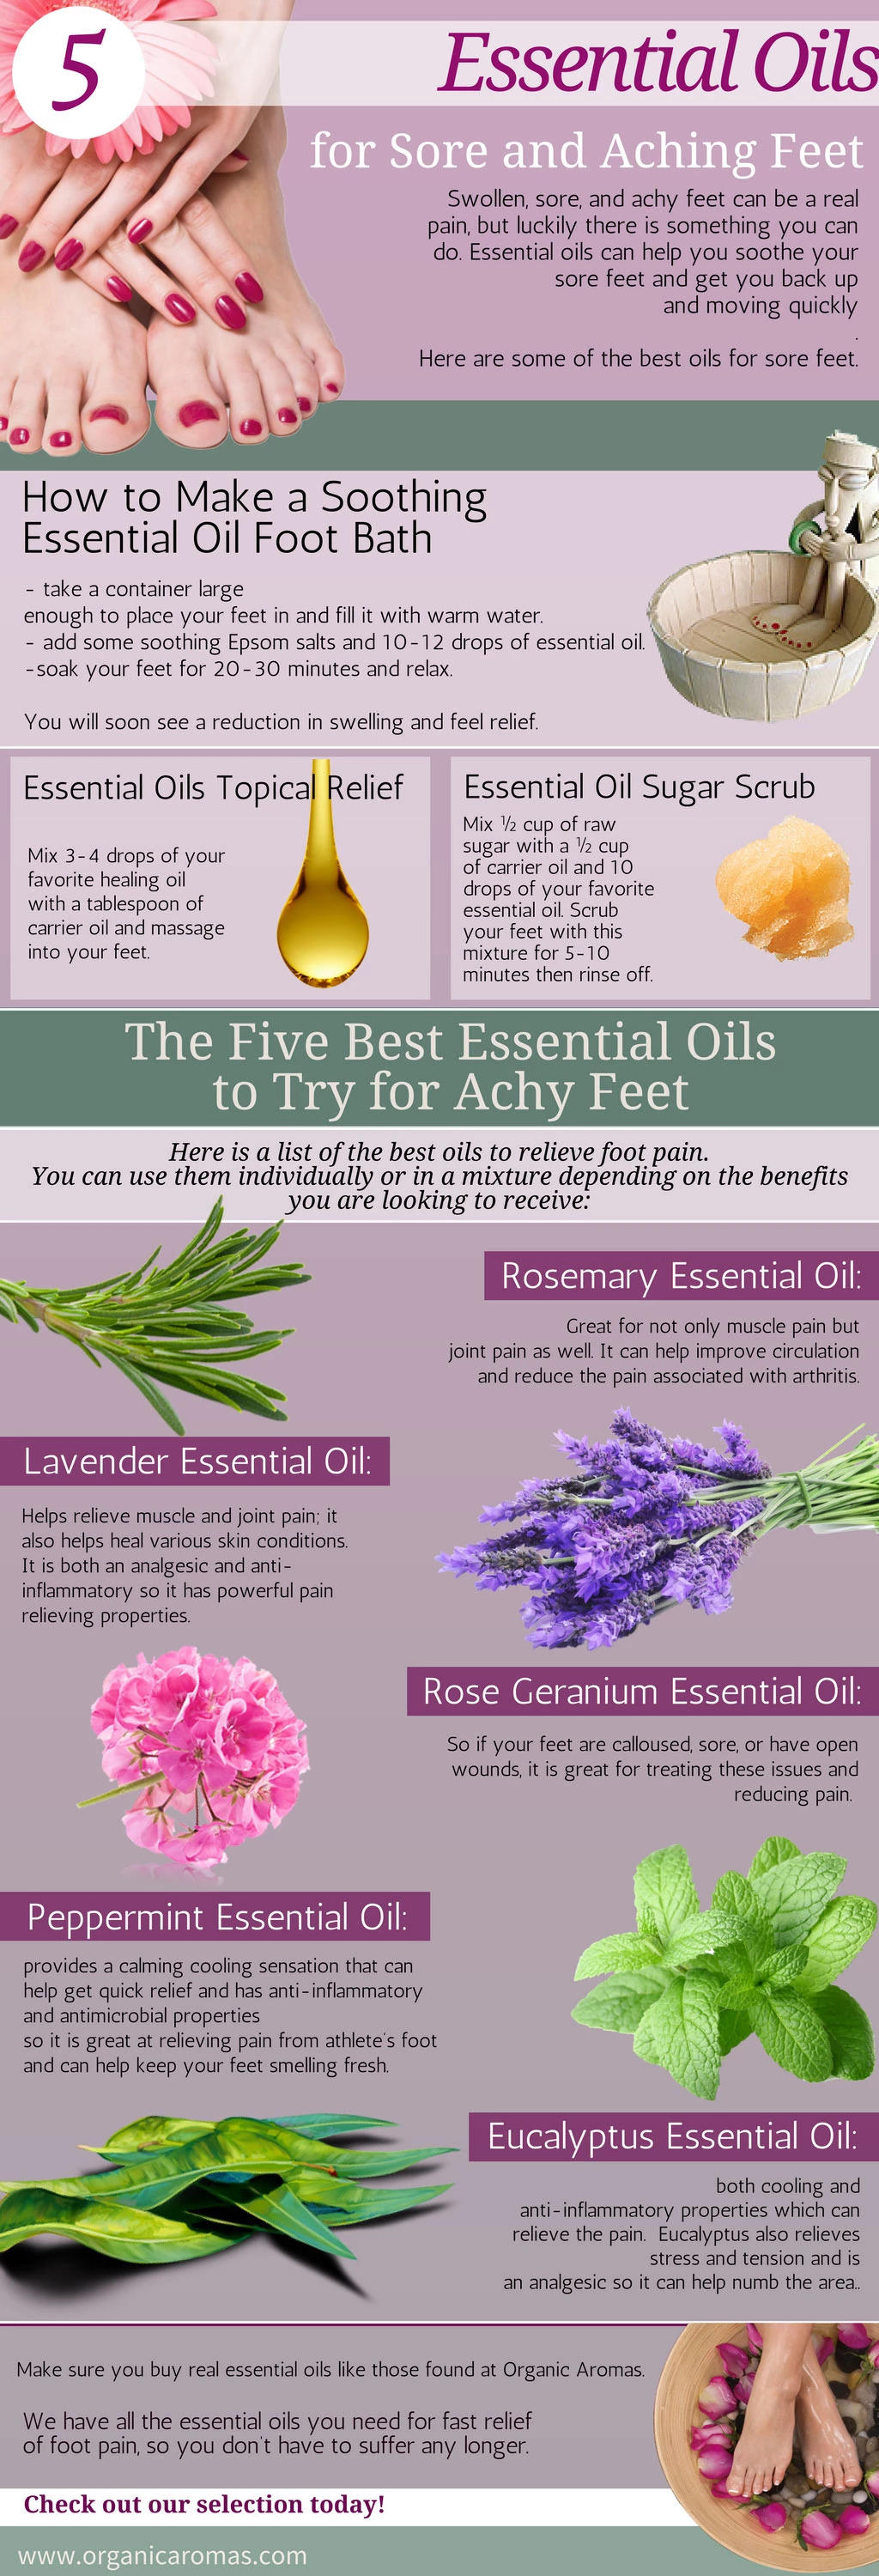 Essential Oils for aching feet